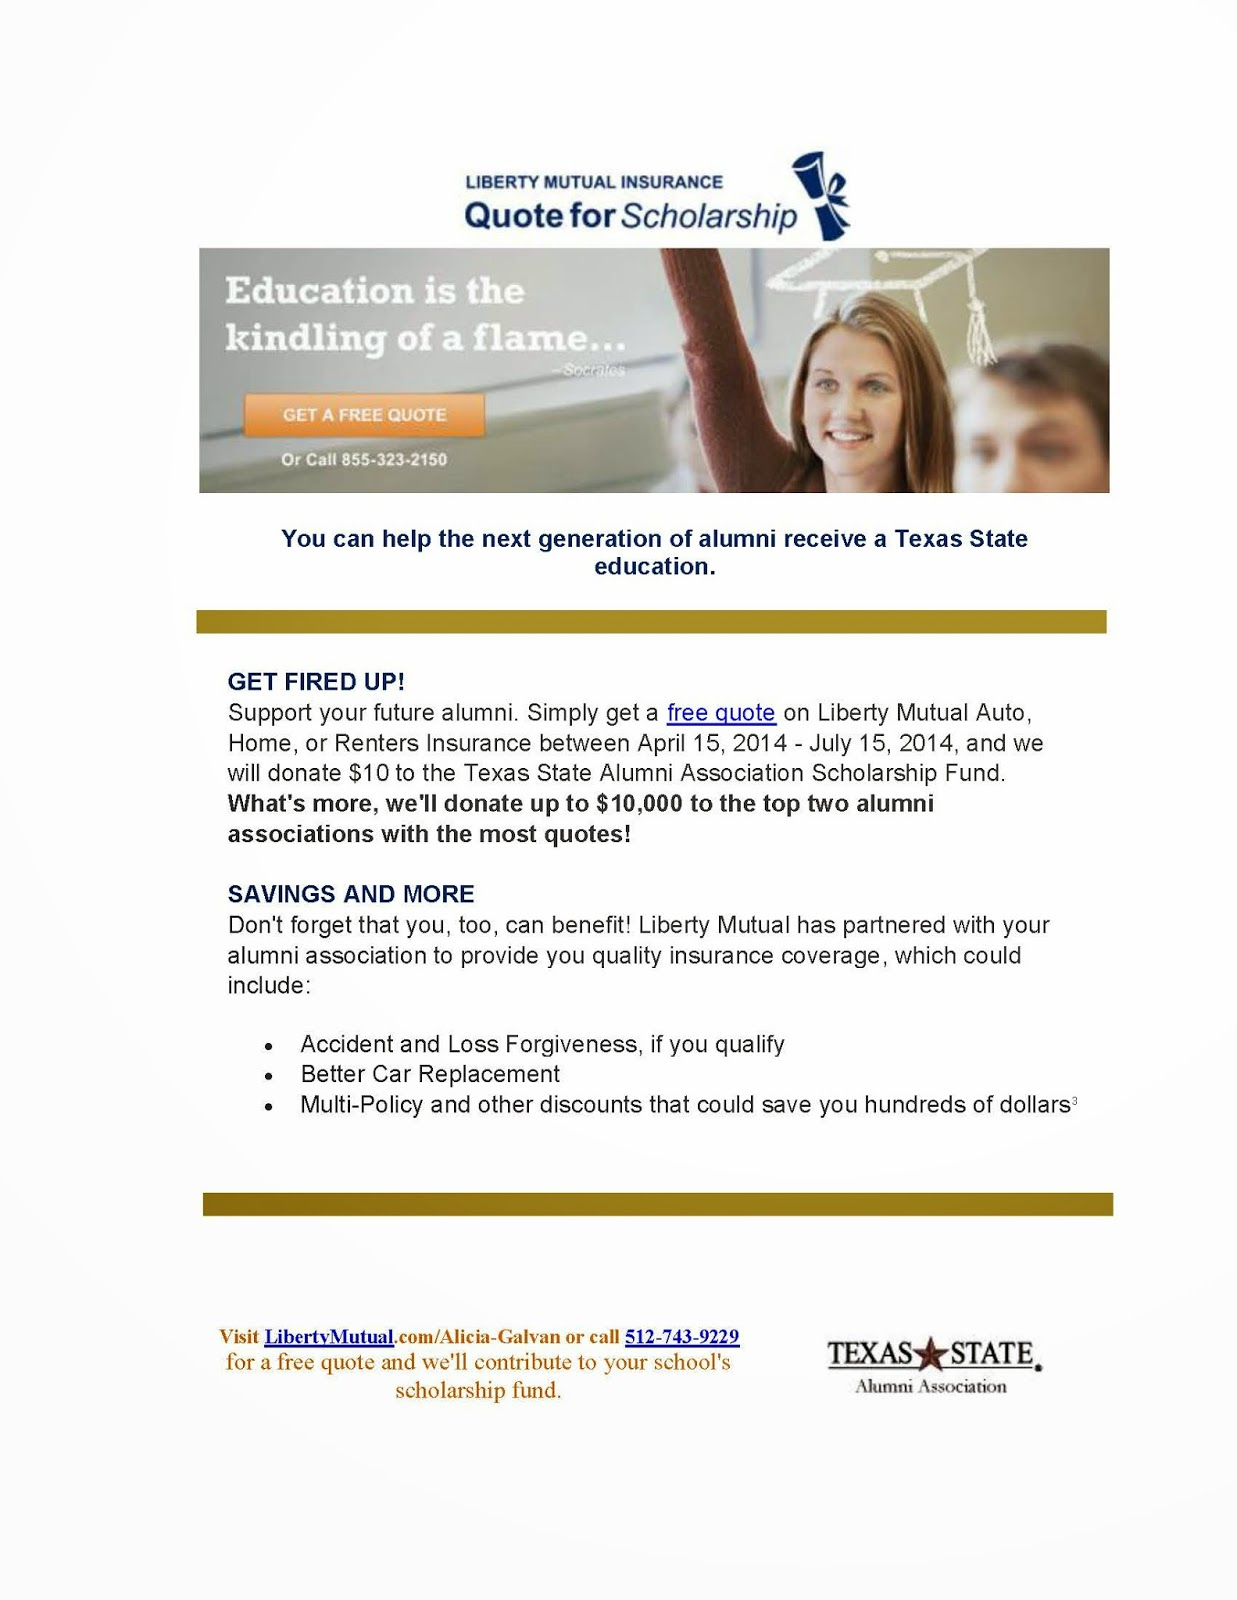 Liberty Mutual Auto Quote Mccoy College Academic Advising Blog Get A Free Quote On Liberty